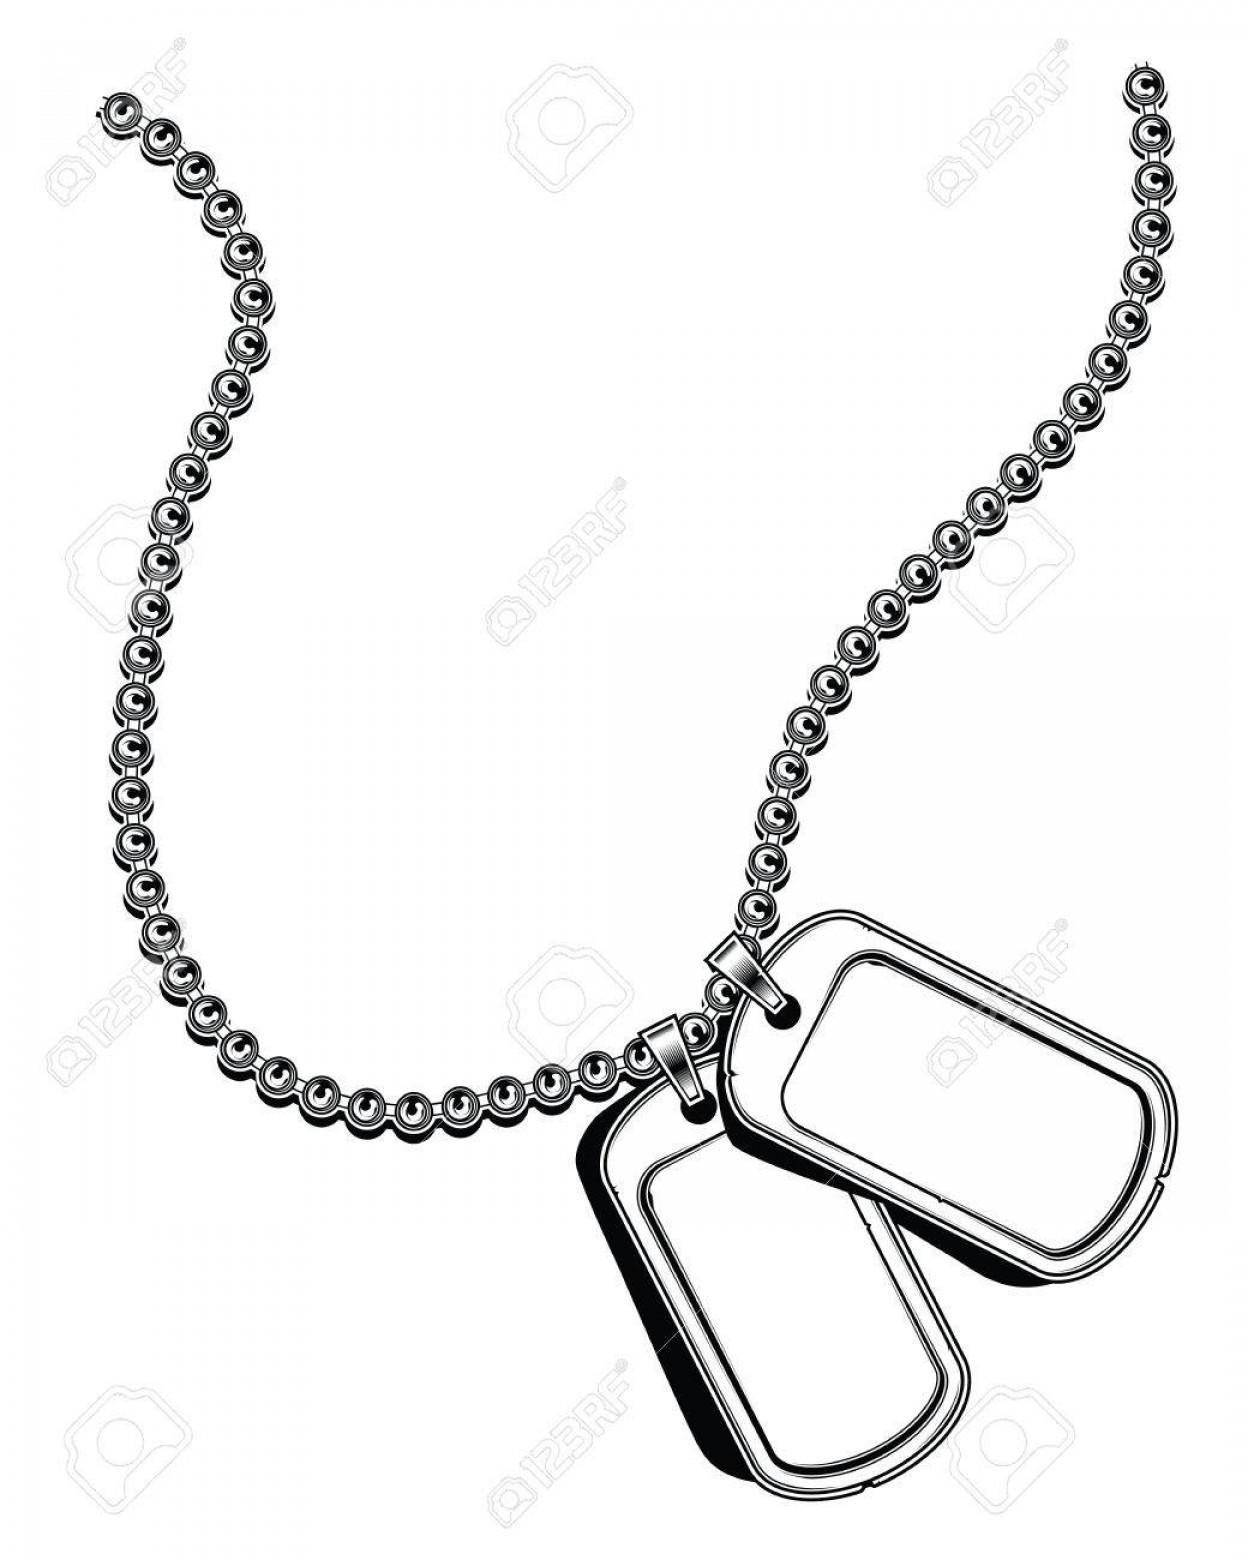 HD Silhouette Soldier Dog Tags Vector Images » Free Vector Art.